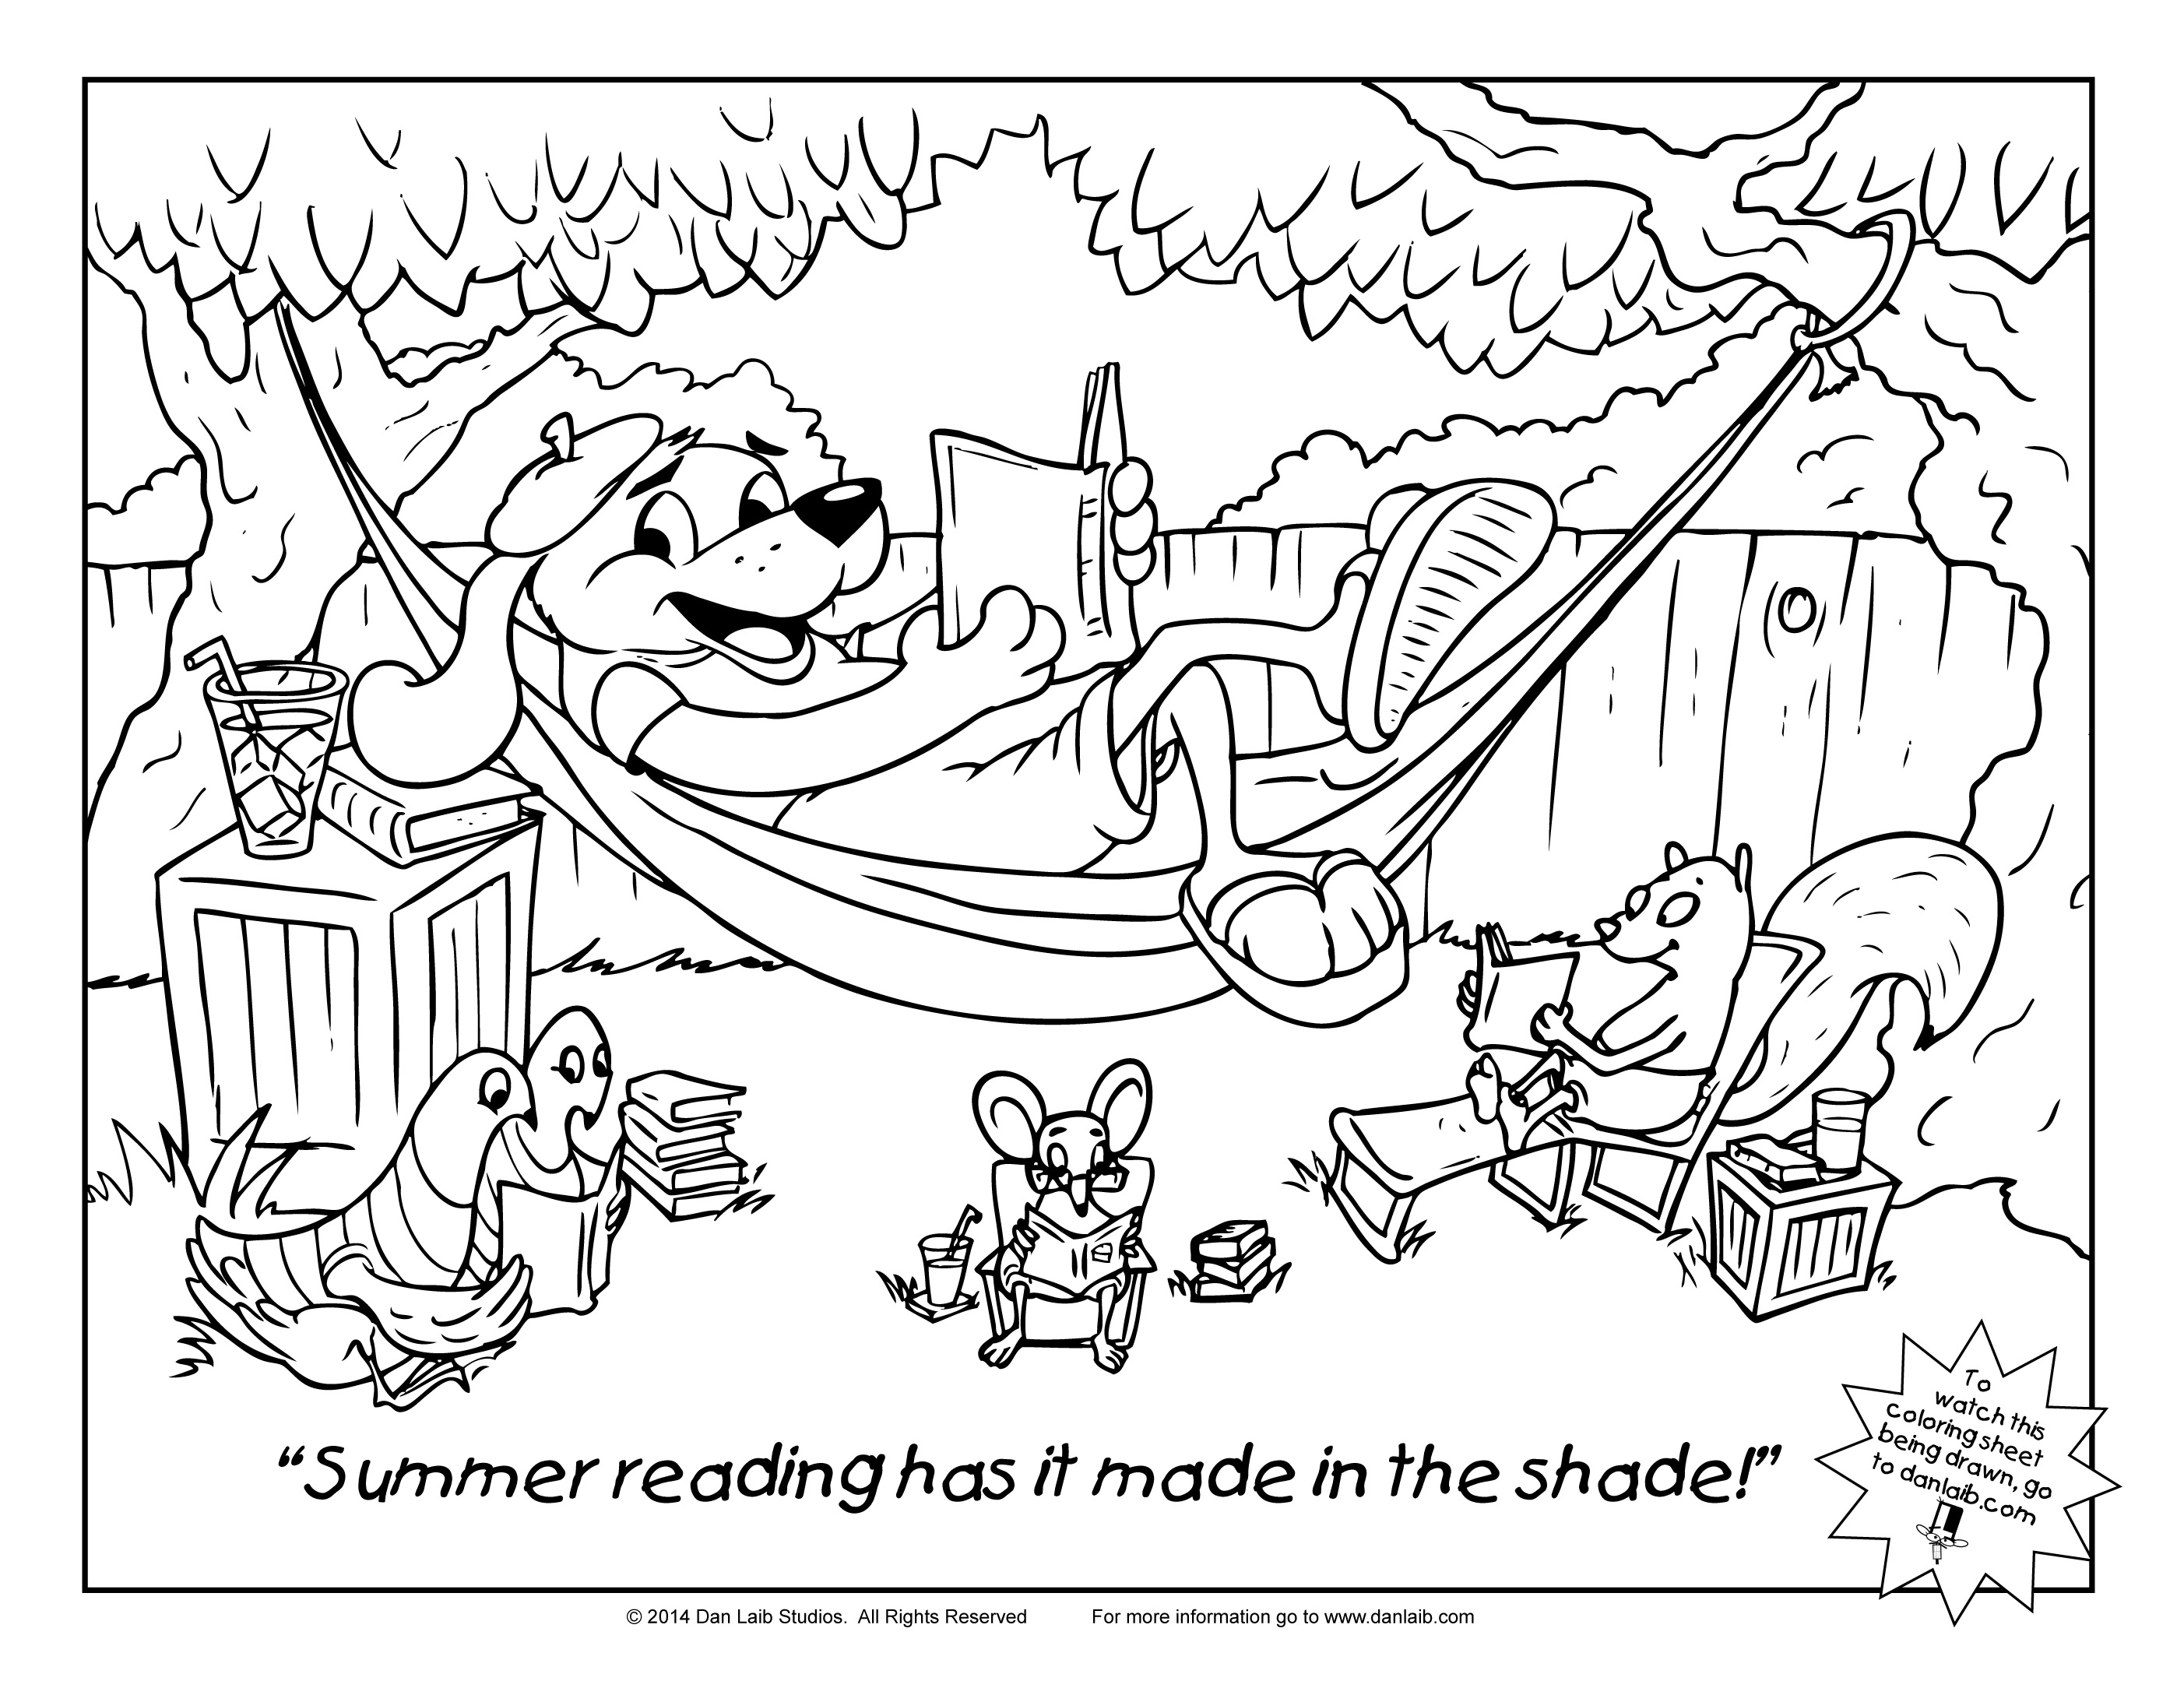 Coloring Sheet Summer Reading